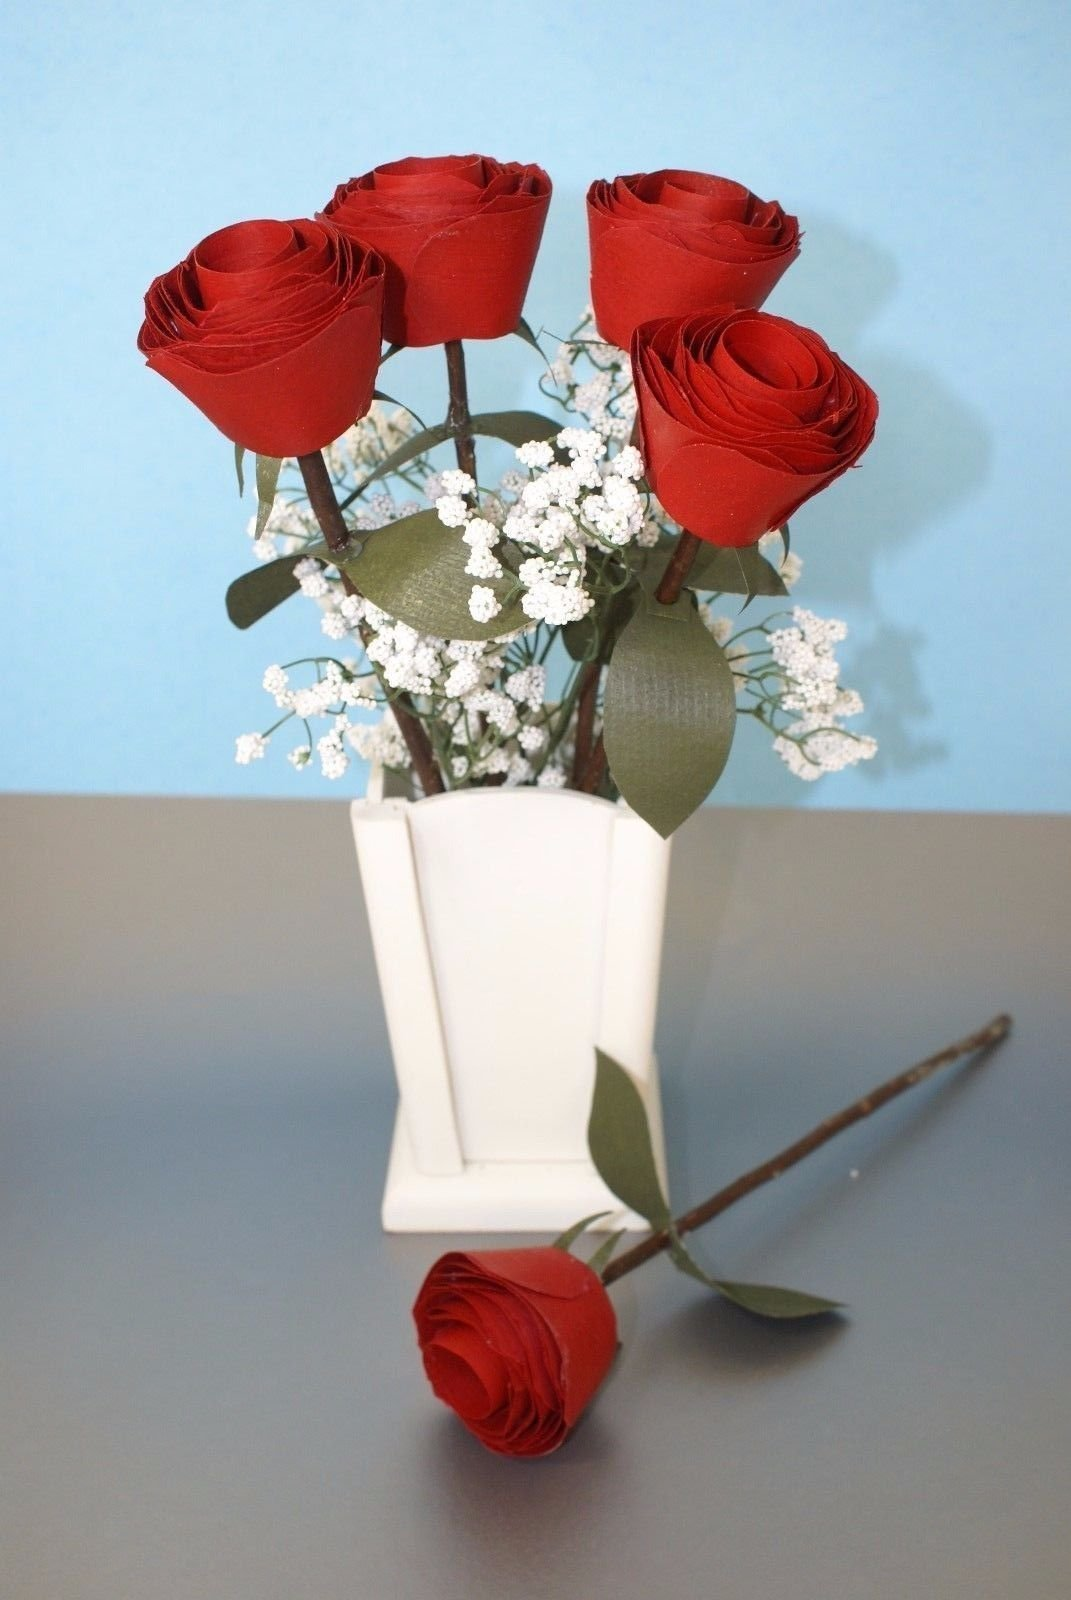 5-Handmade-wooden-red-roses-and-vase-for-5-year-wedding-anniversary-gift-Floral-Centerpiece-Flower-arrangement